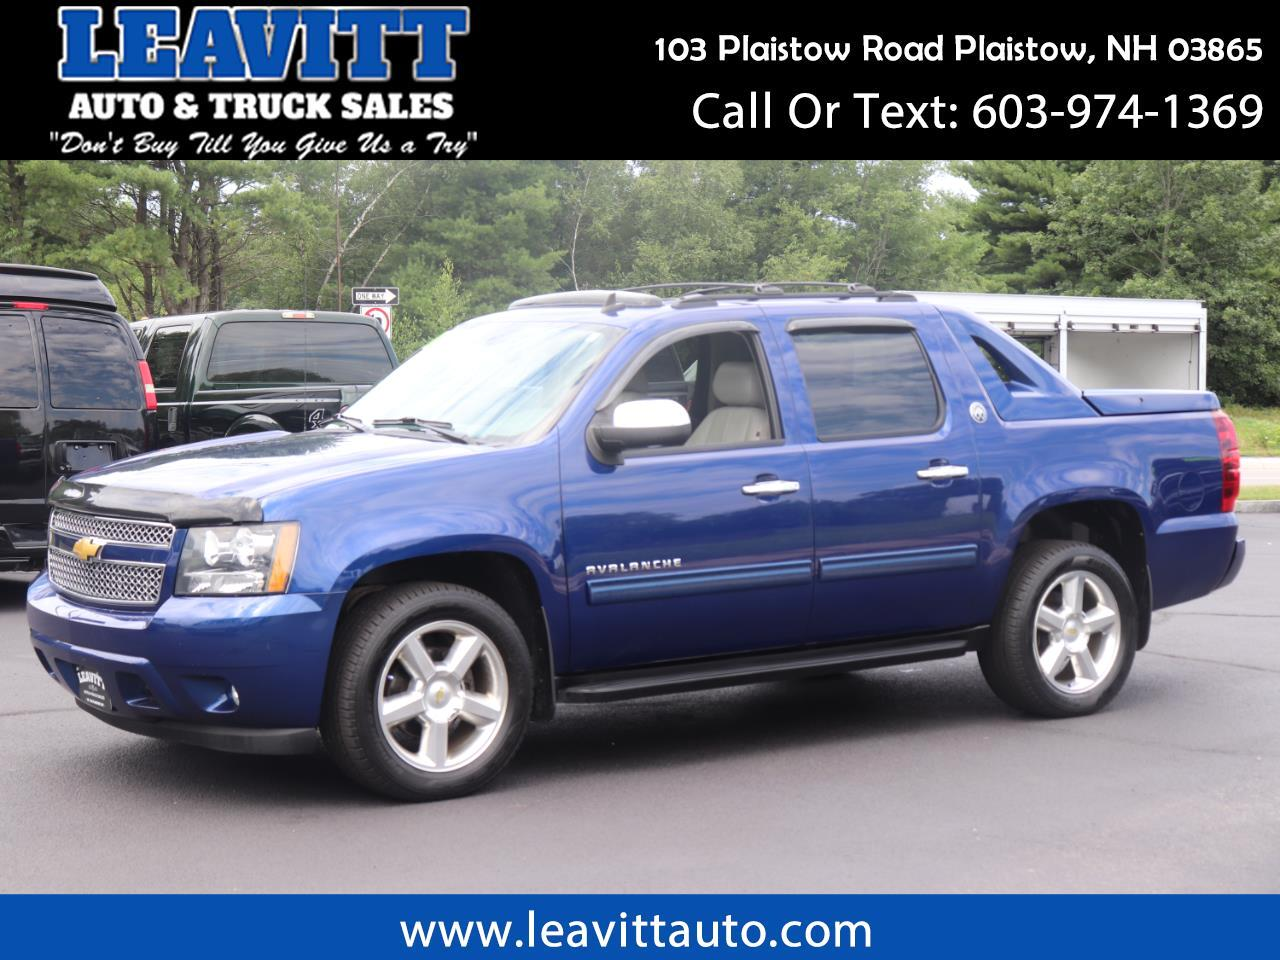 2013 Chevrolet Avalanche LT BLACK DIAMOND 4X4